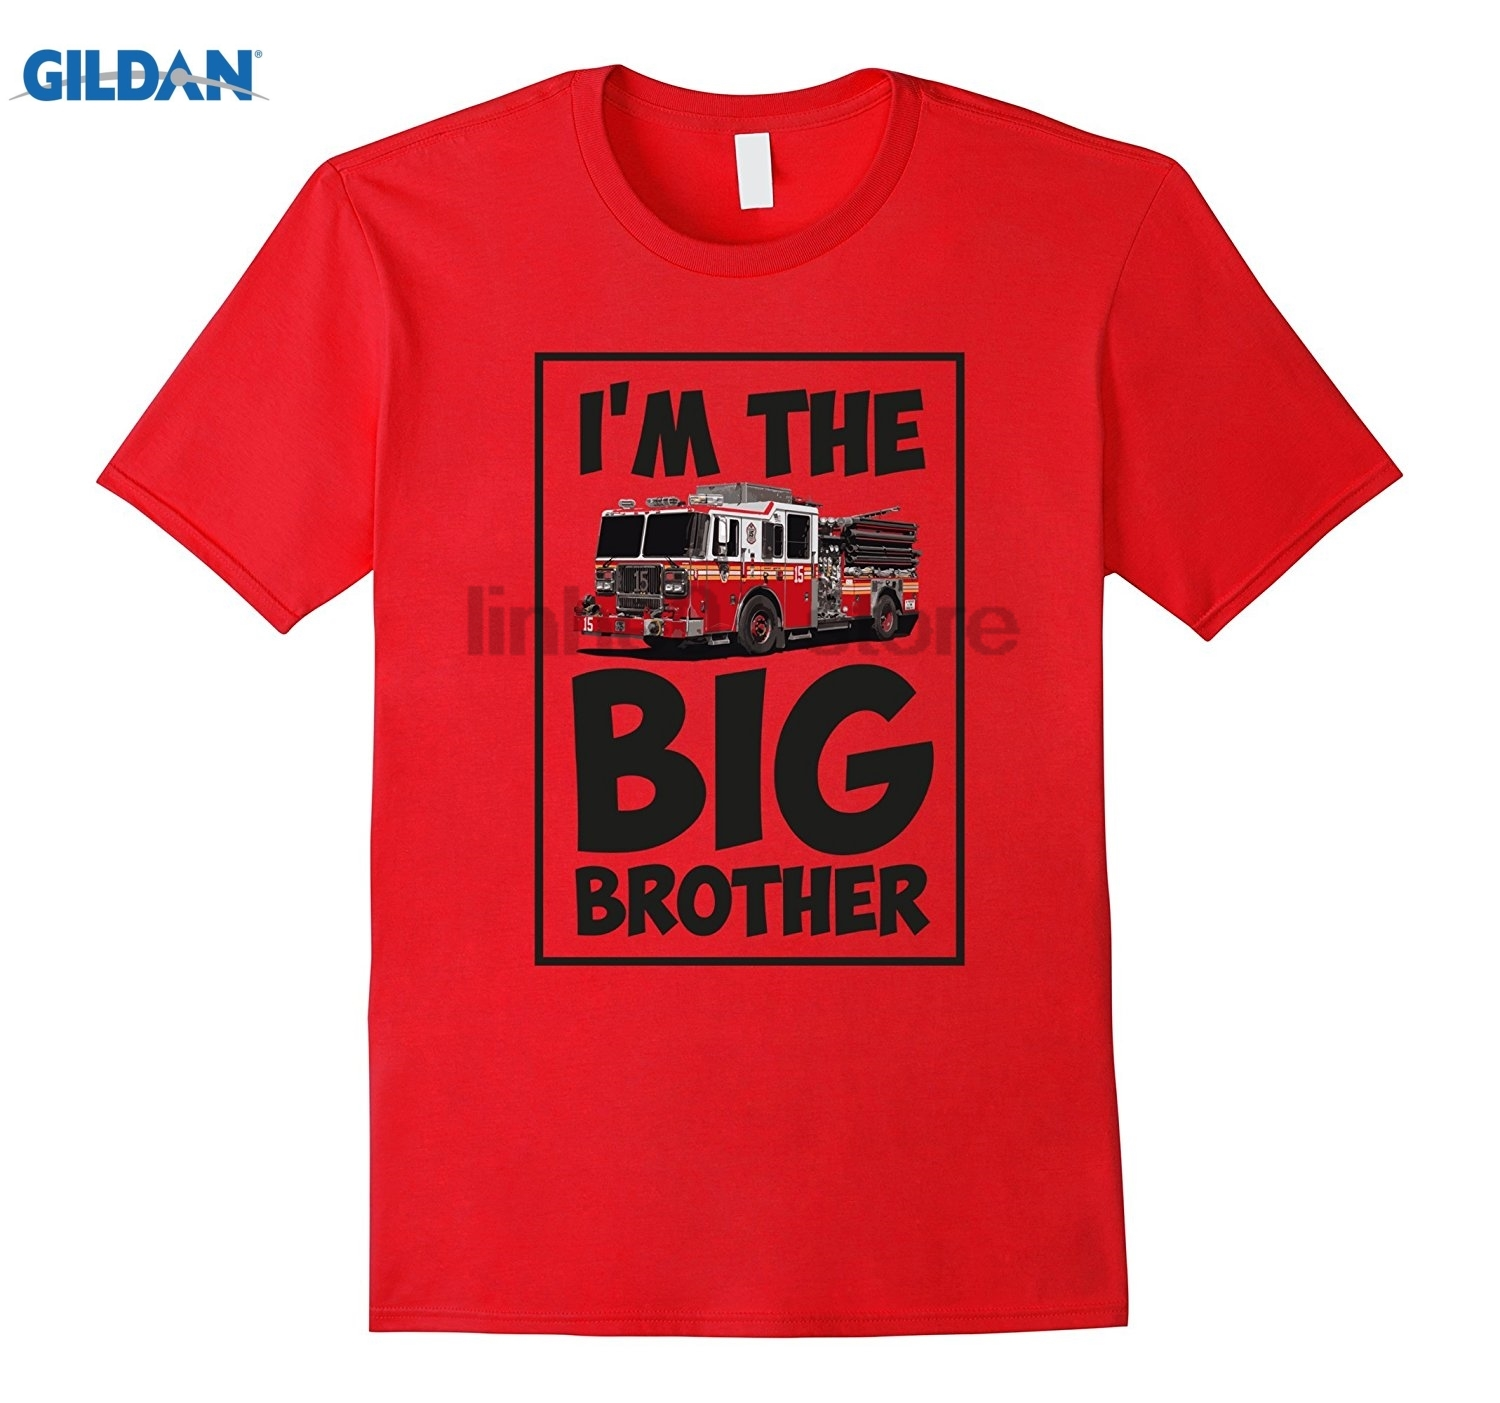 GILDAN IM THE BIG BROTHER Fireman shirt toddler boys kids Hot Womens T-shirt dress T-shirt